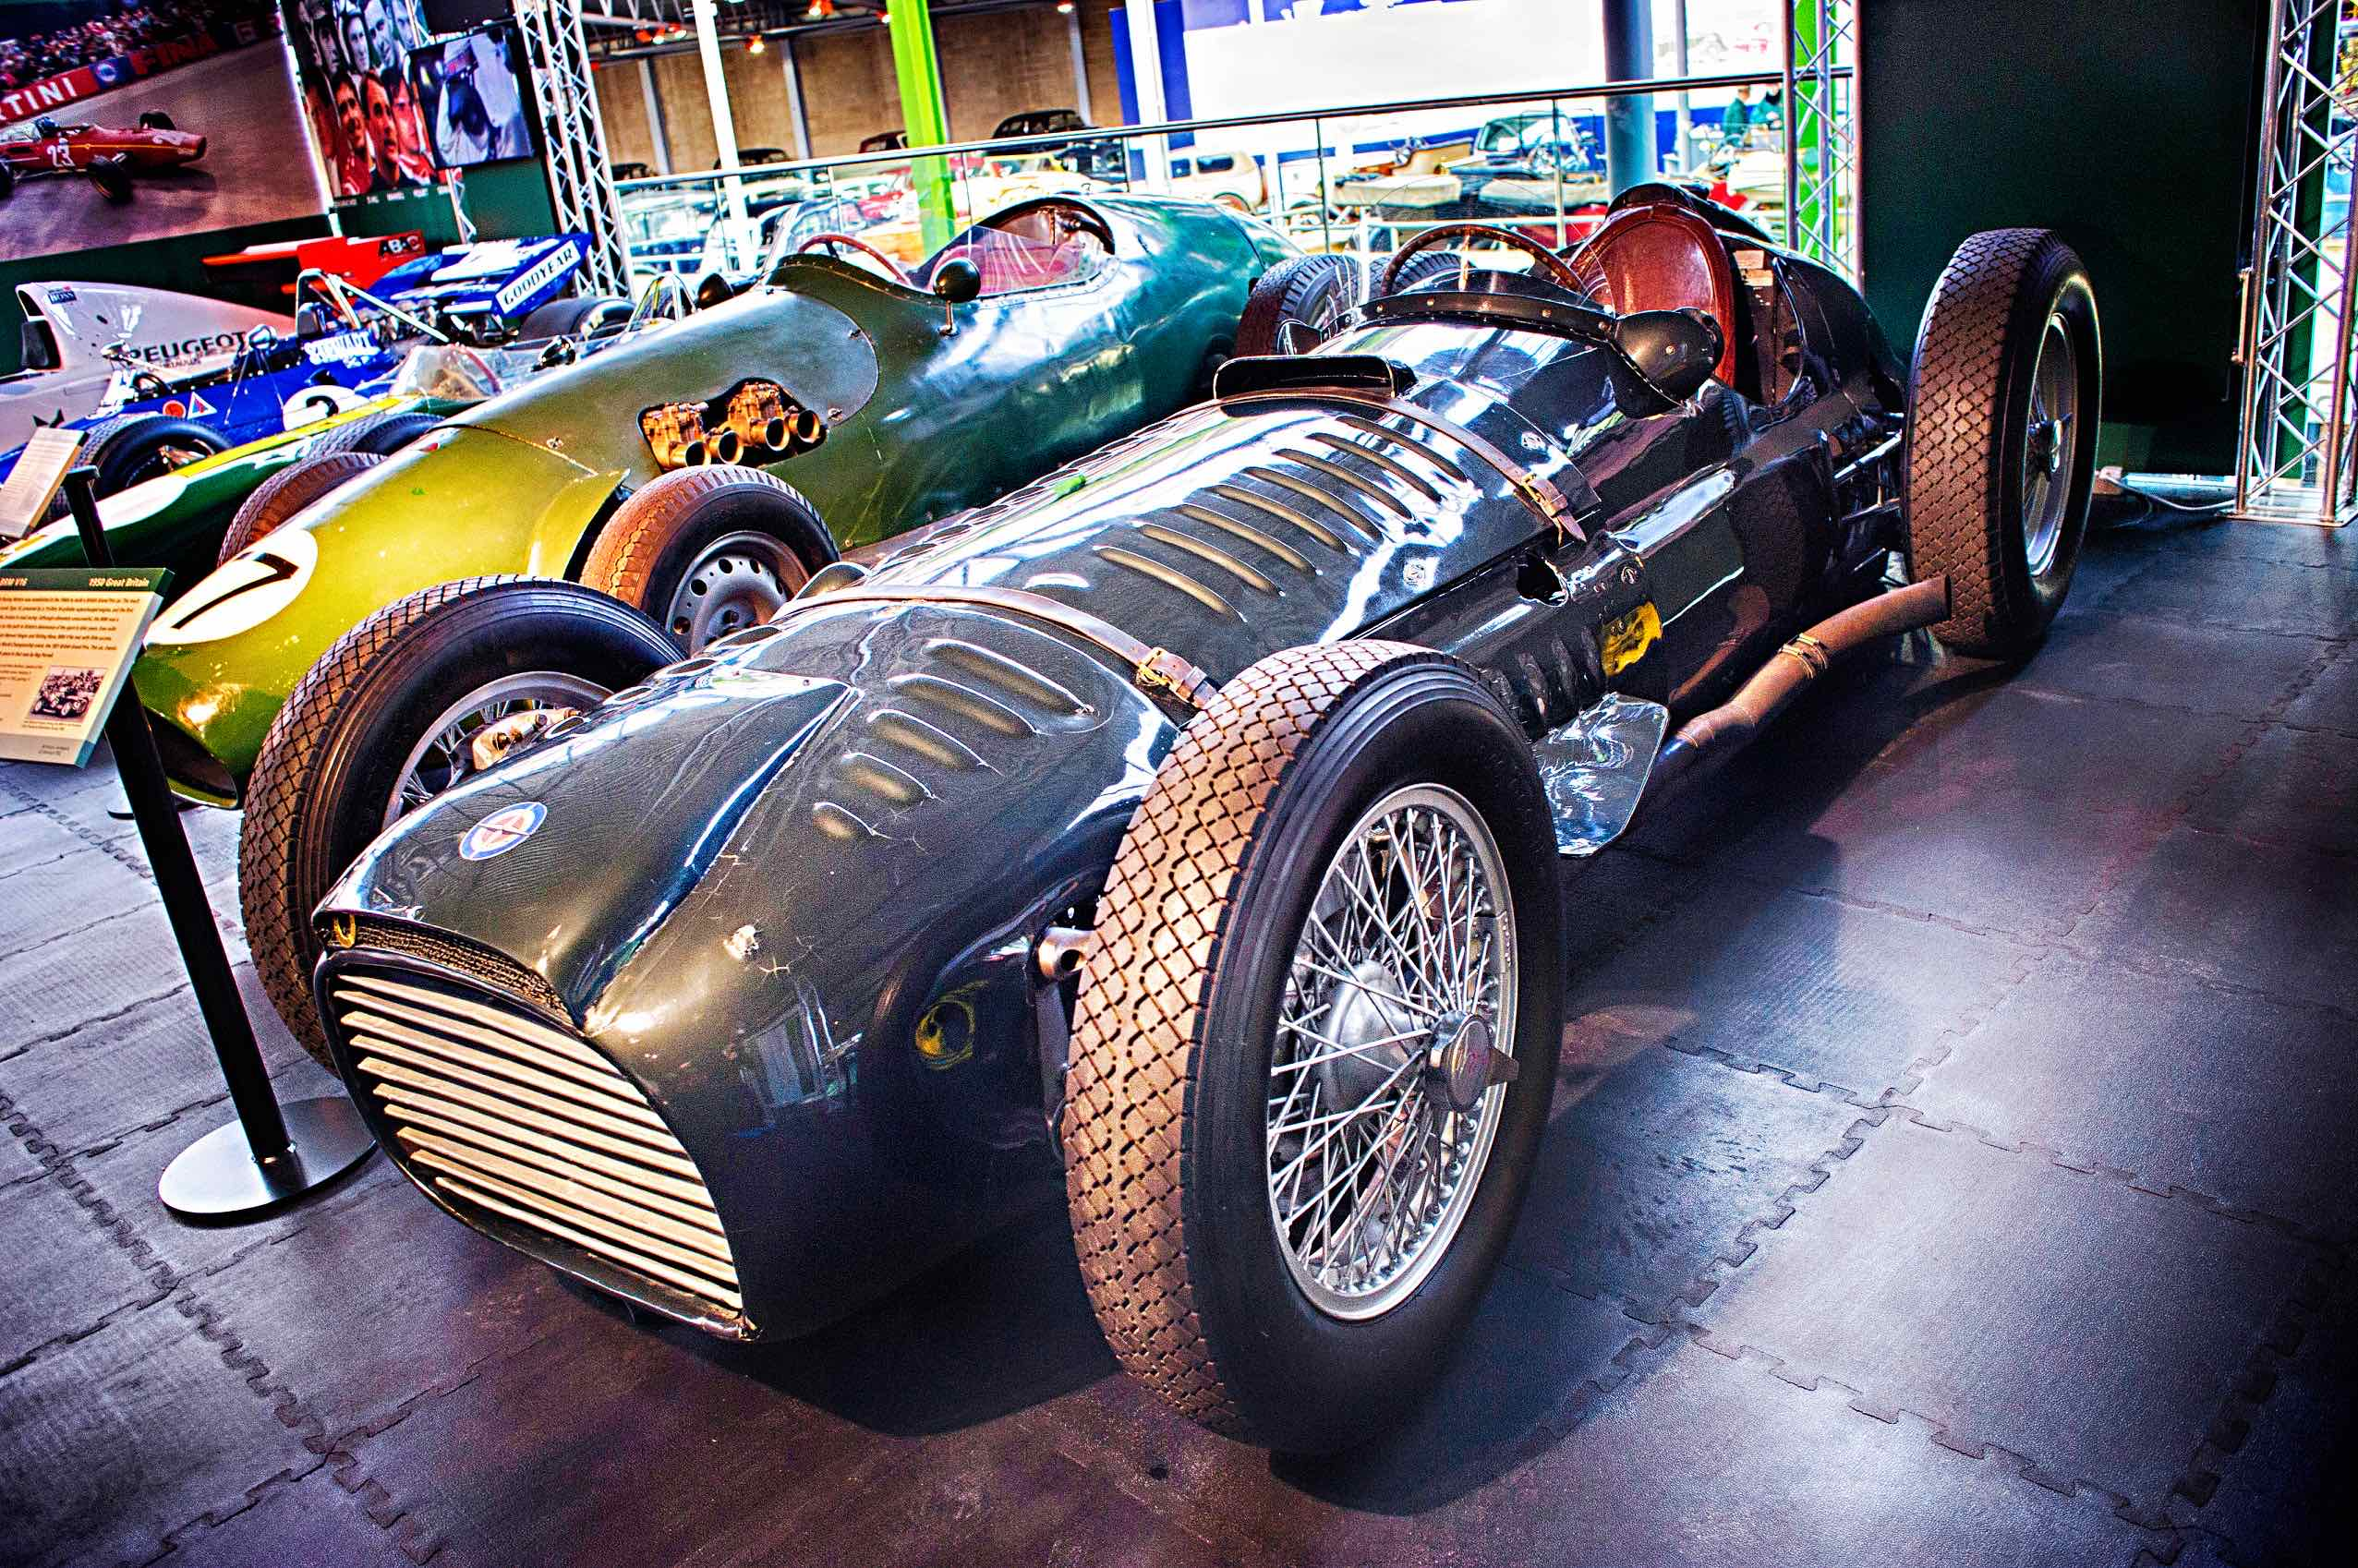 1950 BRM will roar back to life | National Motor Museum photo by Samantha Samantha Cook Photography